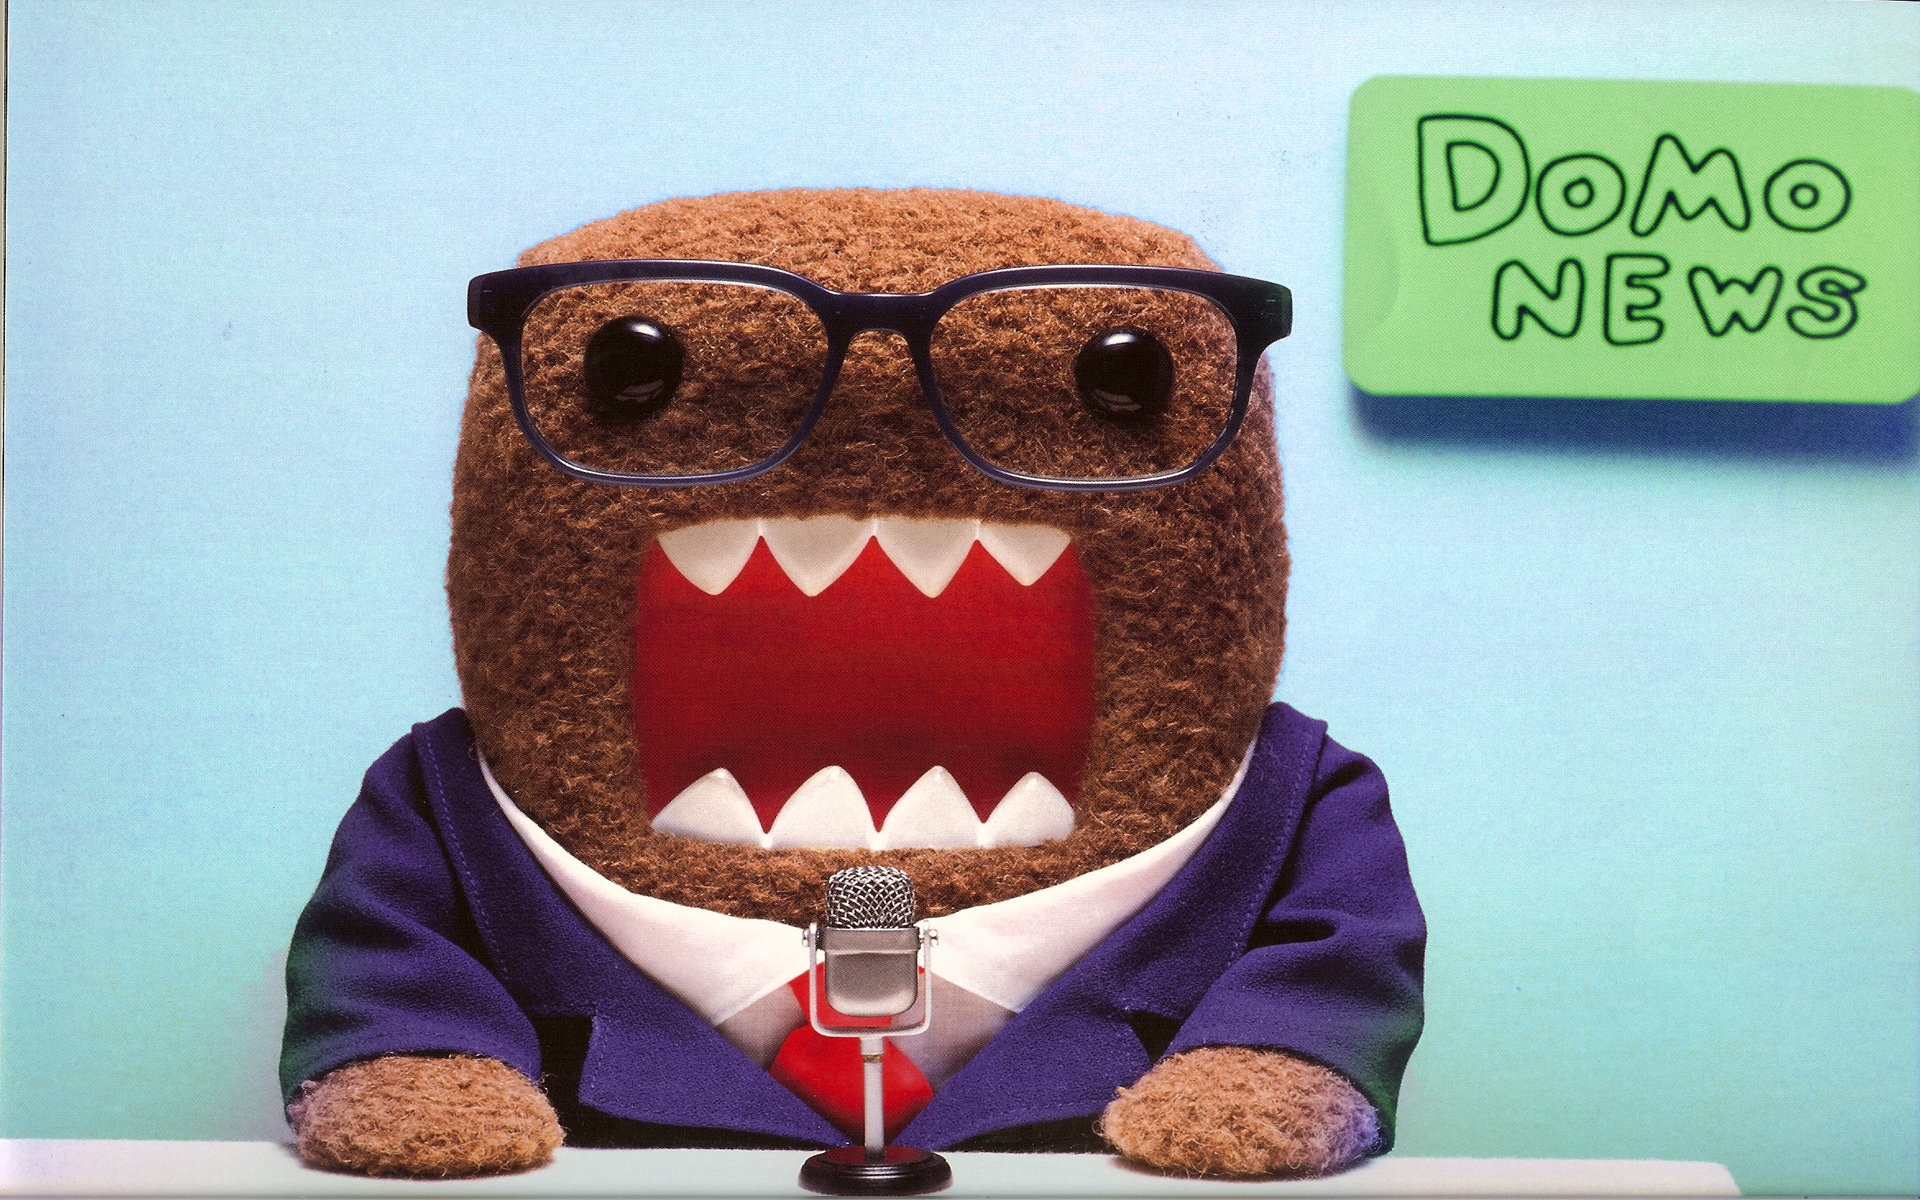 Funny Domo News Wallpaper Desktop Wallpaper WallpaperLepi 1920x1200